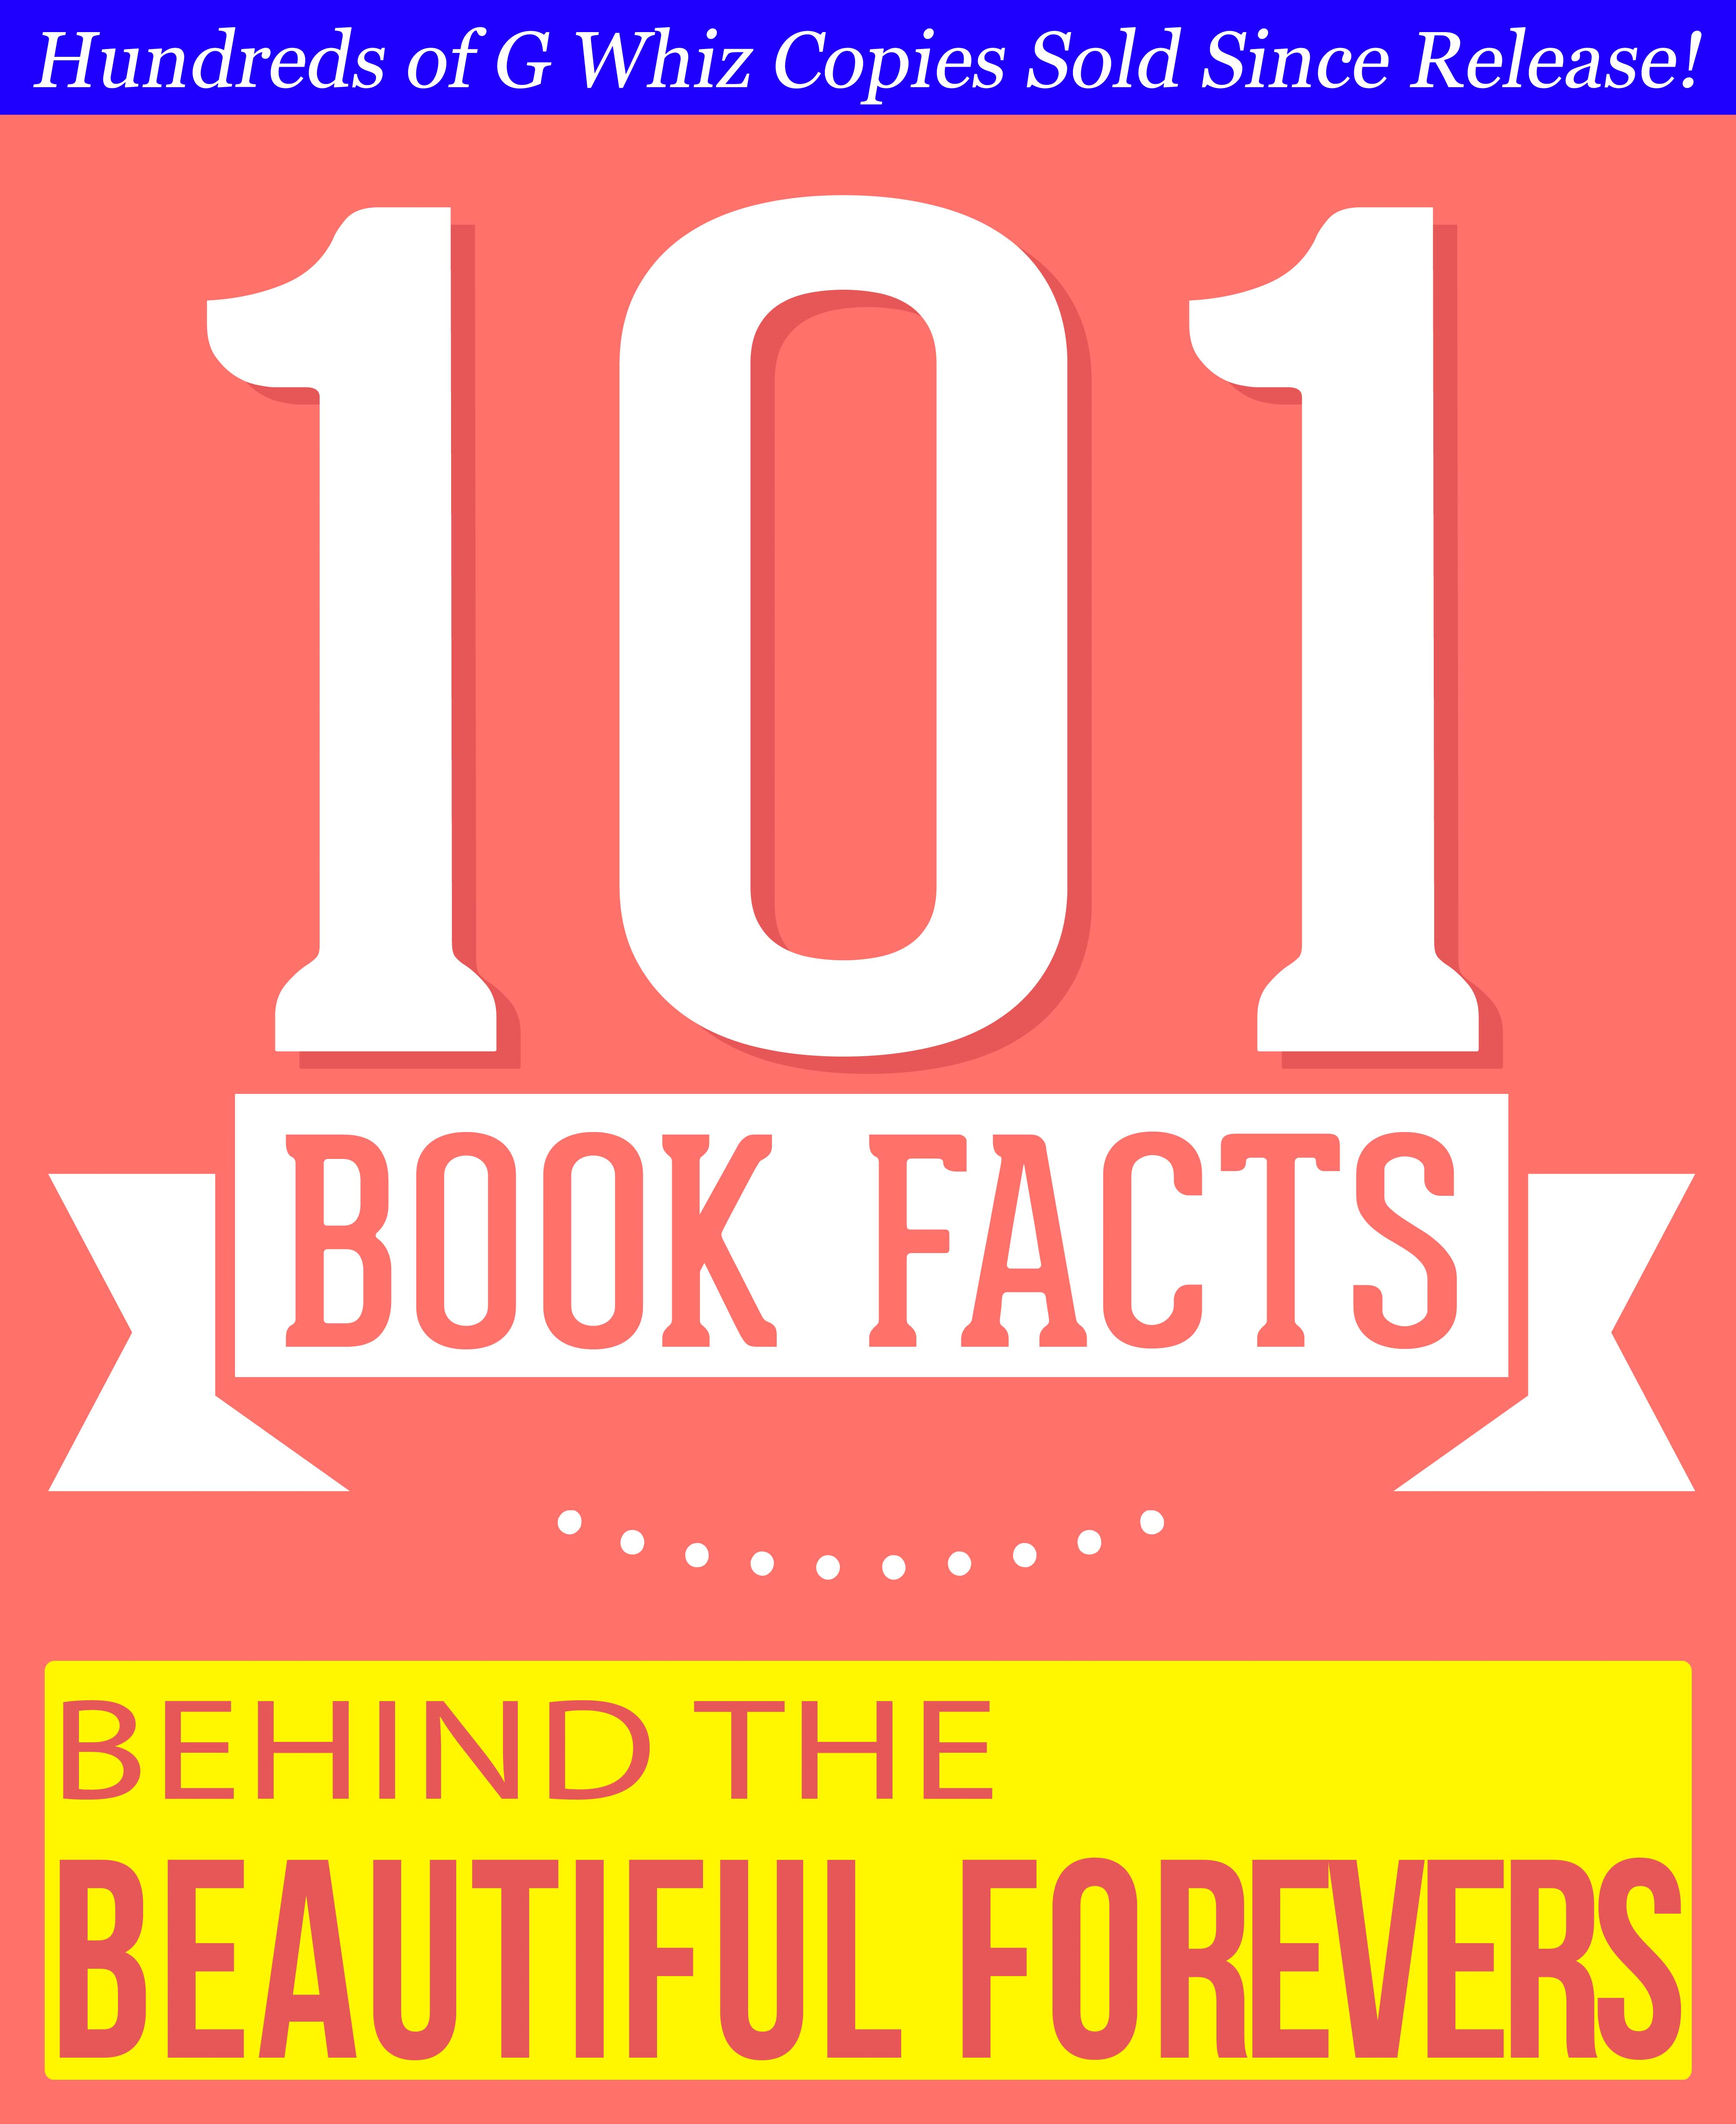 G Whiz - Behind the Beautiful Forevers  - 101 Amazing Facts You Didn't Know